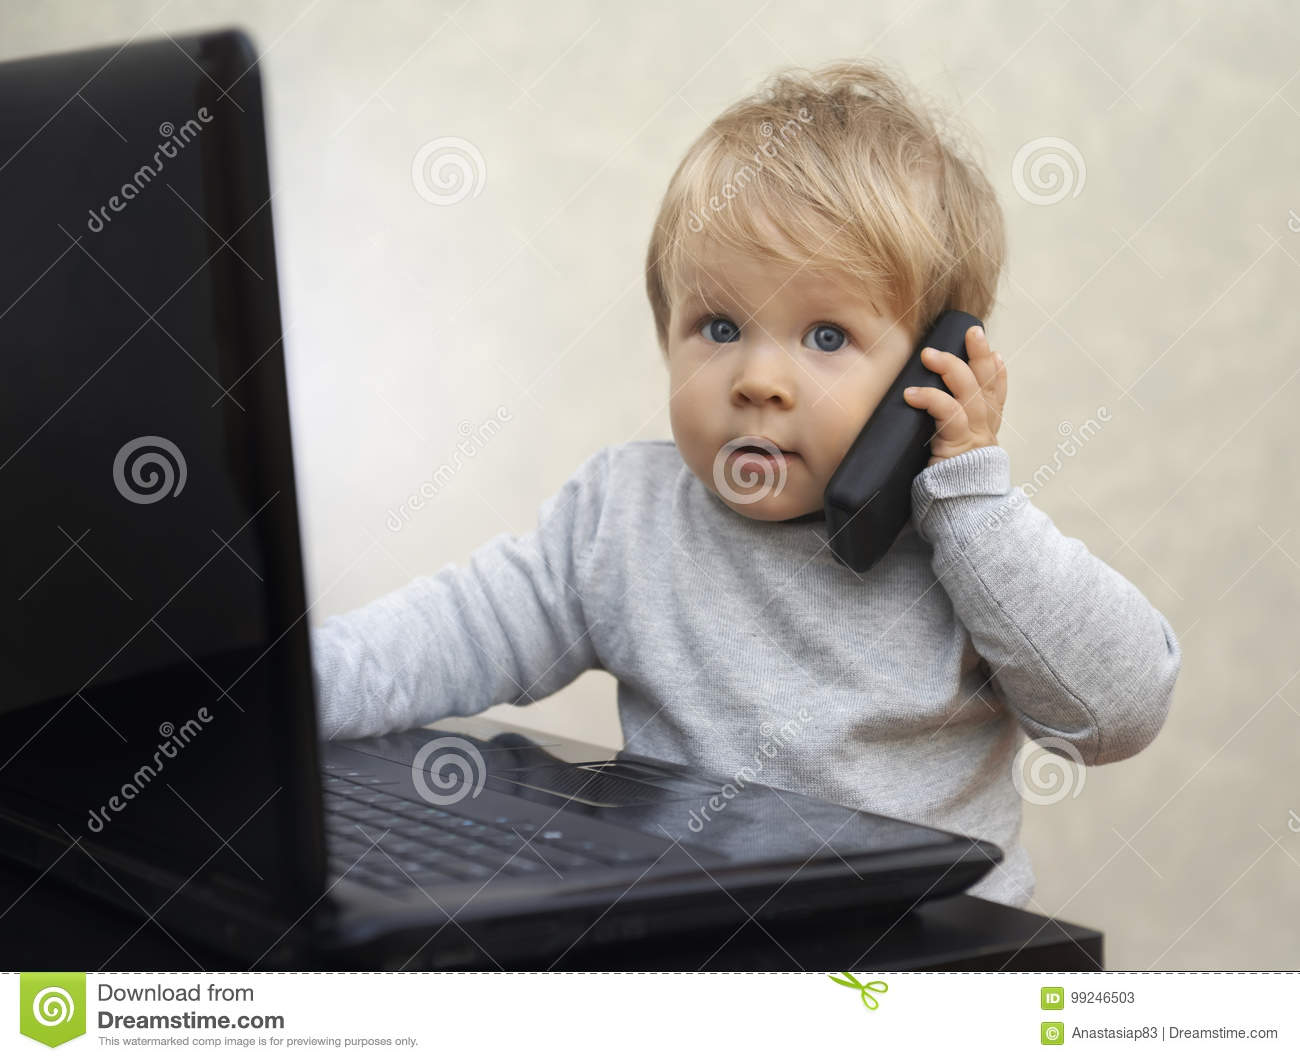 Little businessman sitting at the computer with a toy cell phone